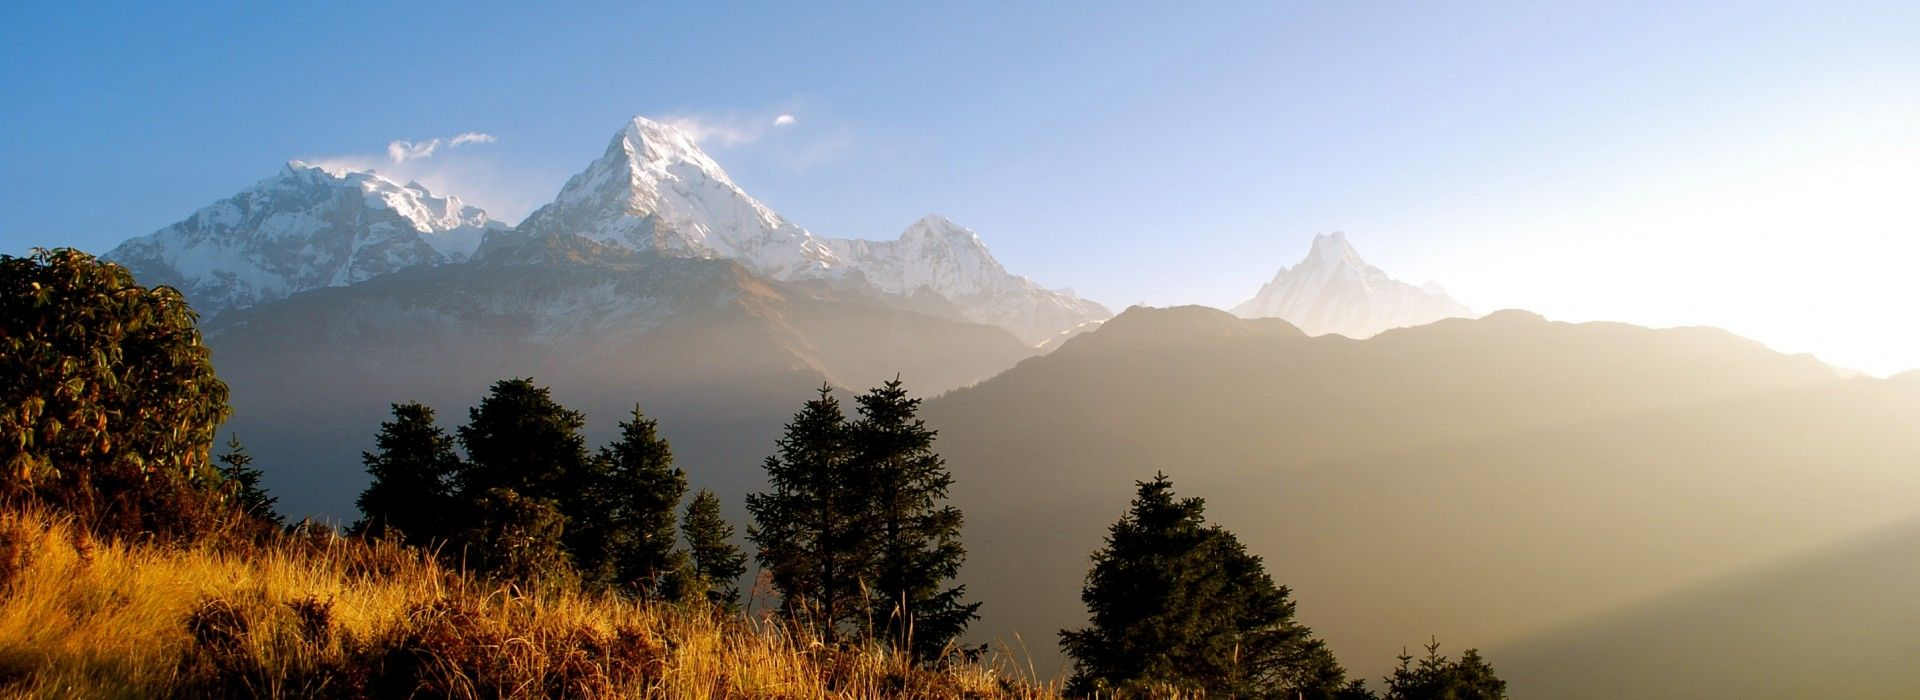 Wildlife, landscapes and nature Tours in Annapurna Region